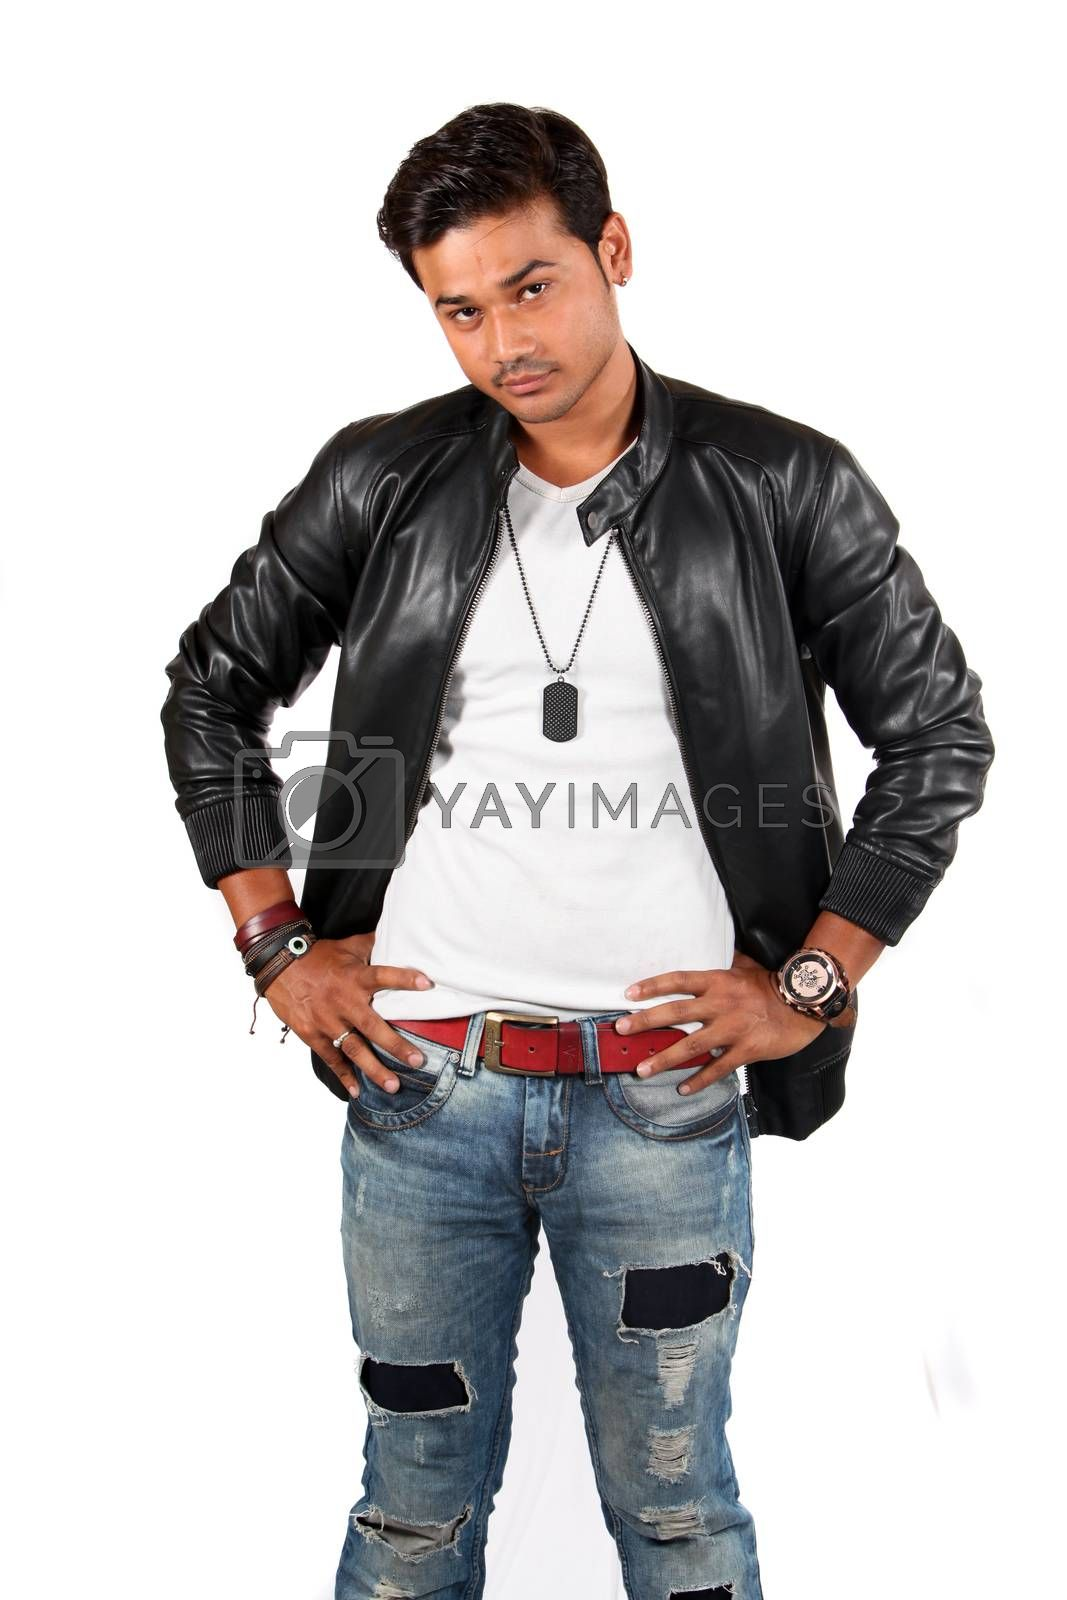 A confident looking young Indian guy, on white studio background.